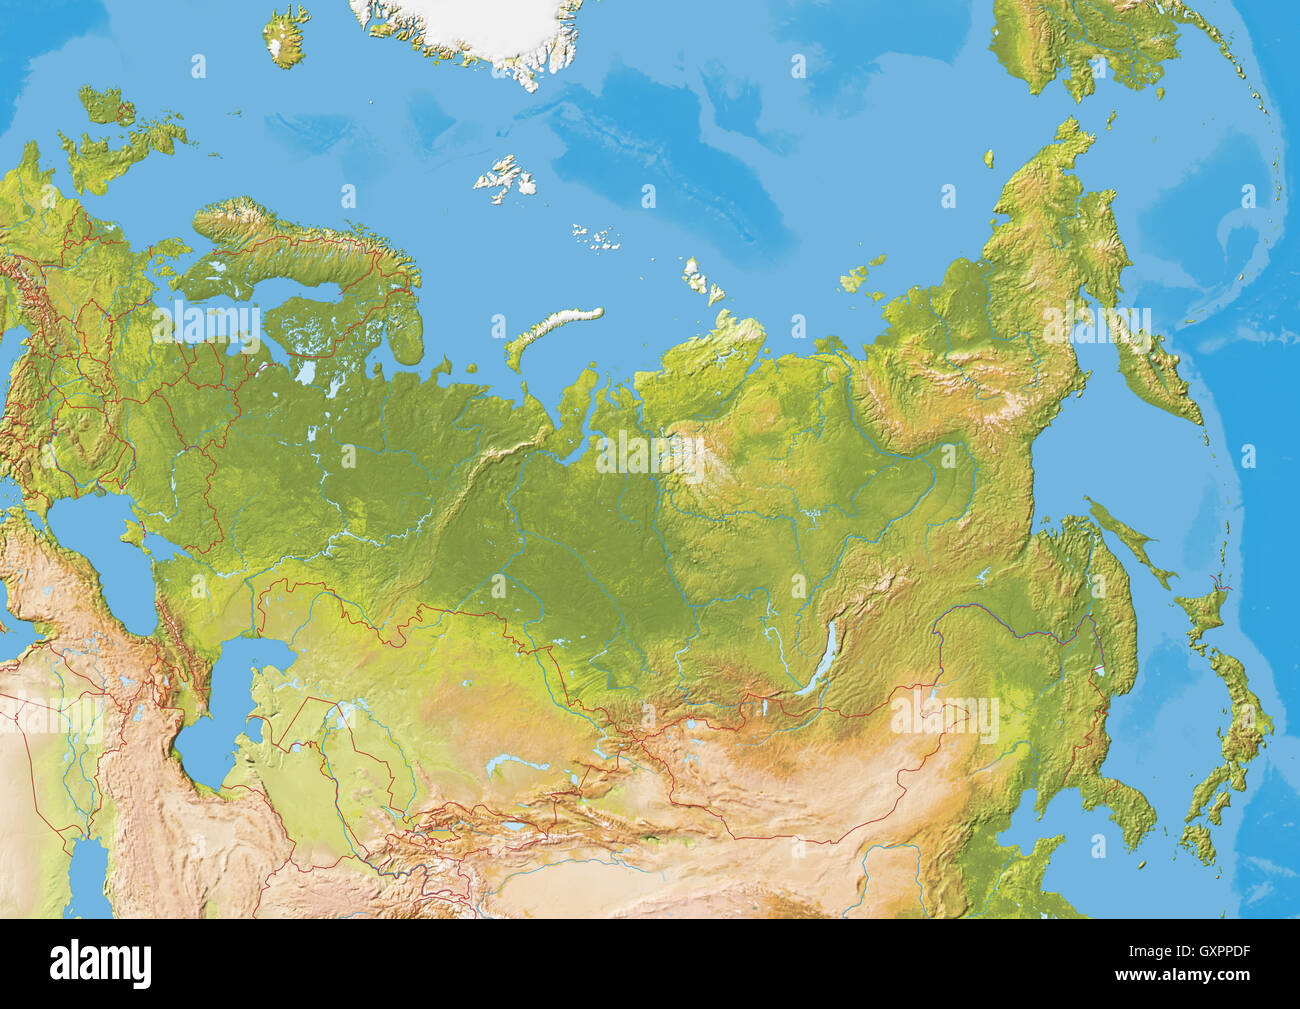 Russia map stock photos russia map stock images alamy map of russia natural colors with hillshading showing international border for crimea gumiabroncs Images